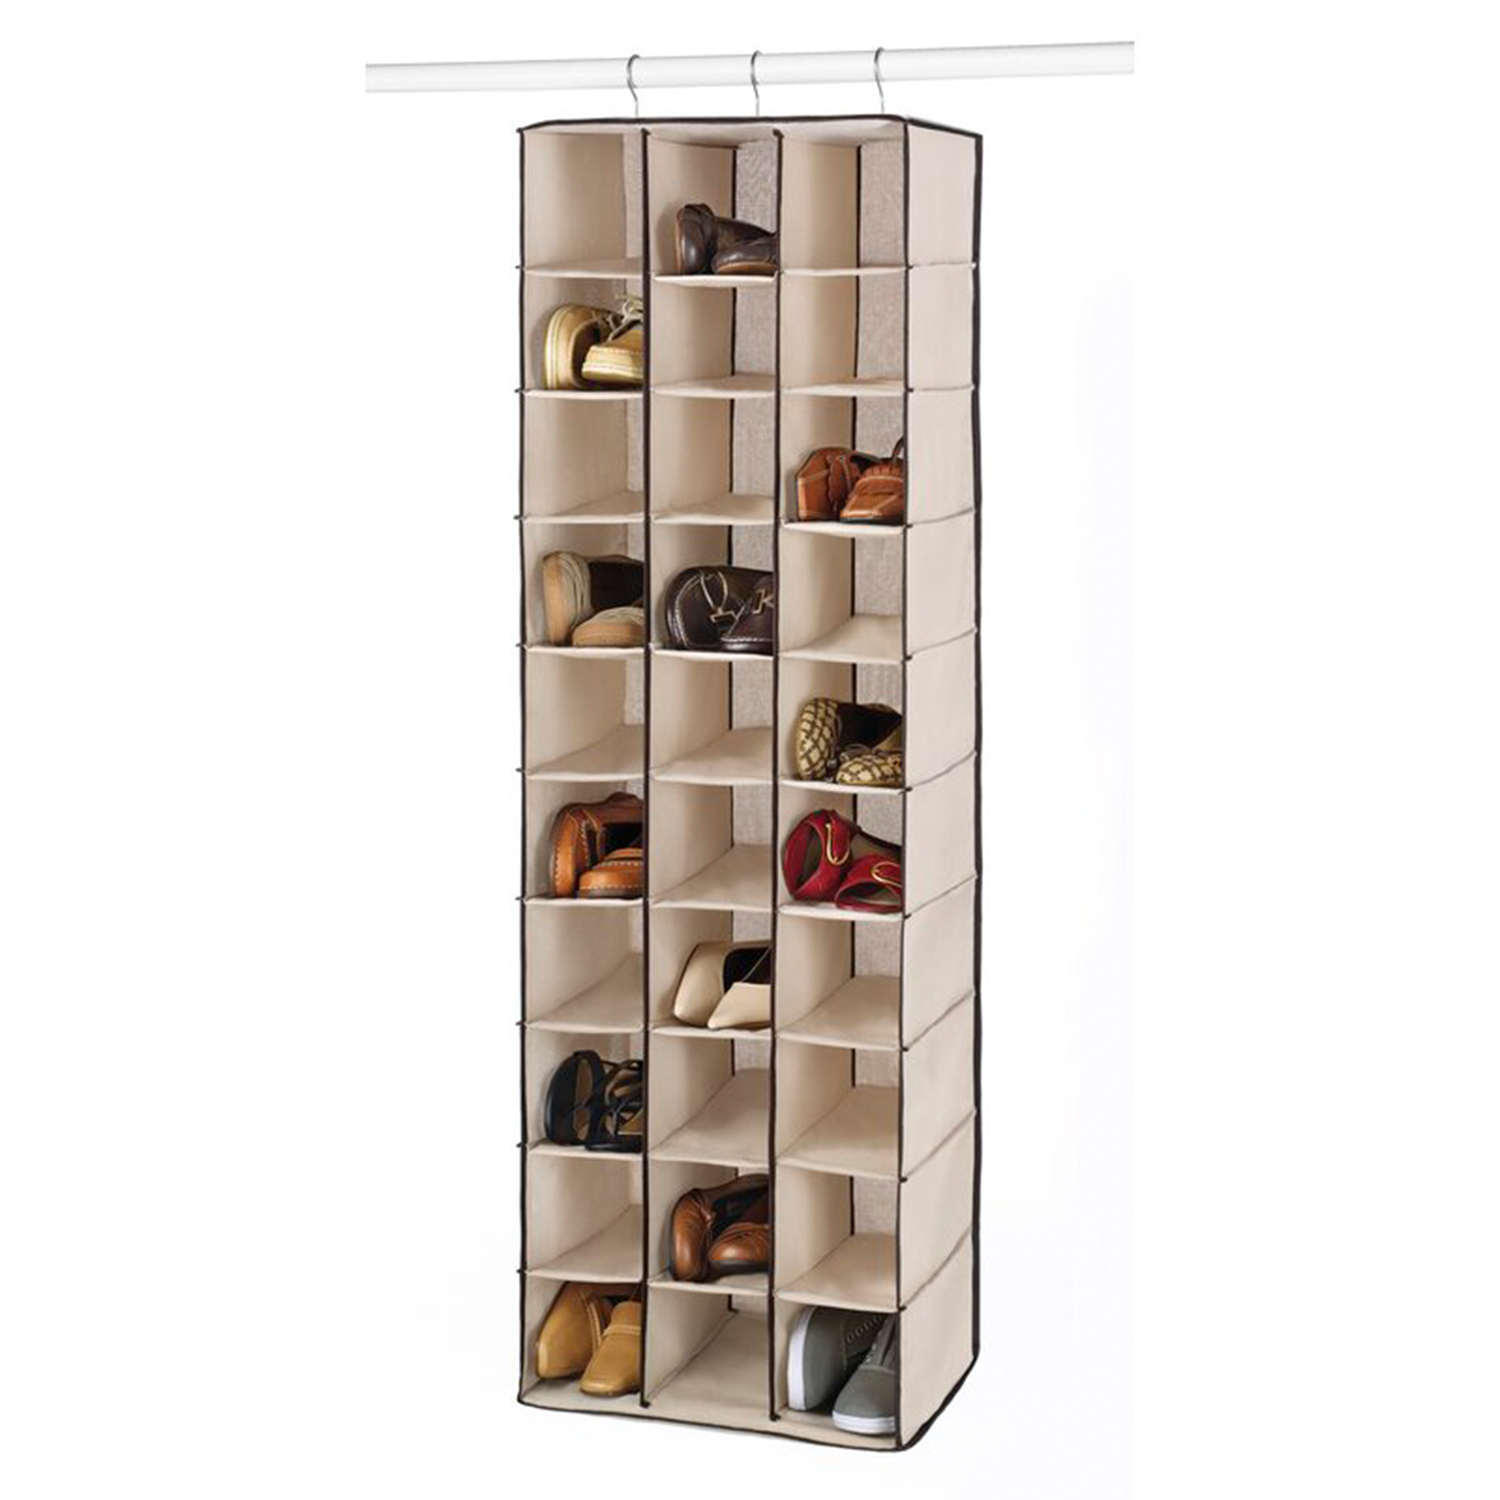 Dotted Line 30 Pair Hanging Shoe Organizer